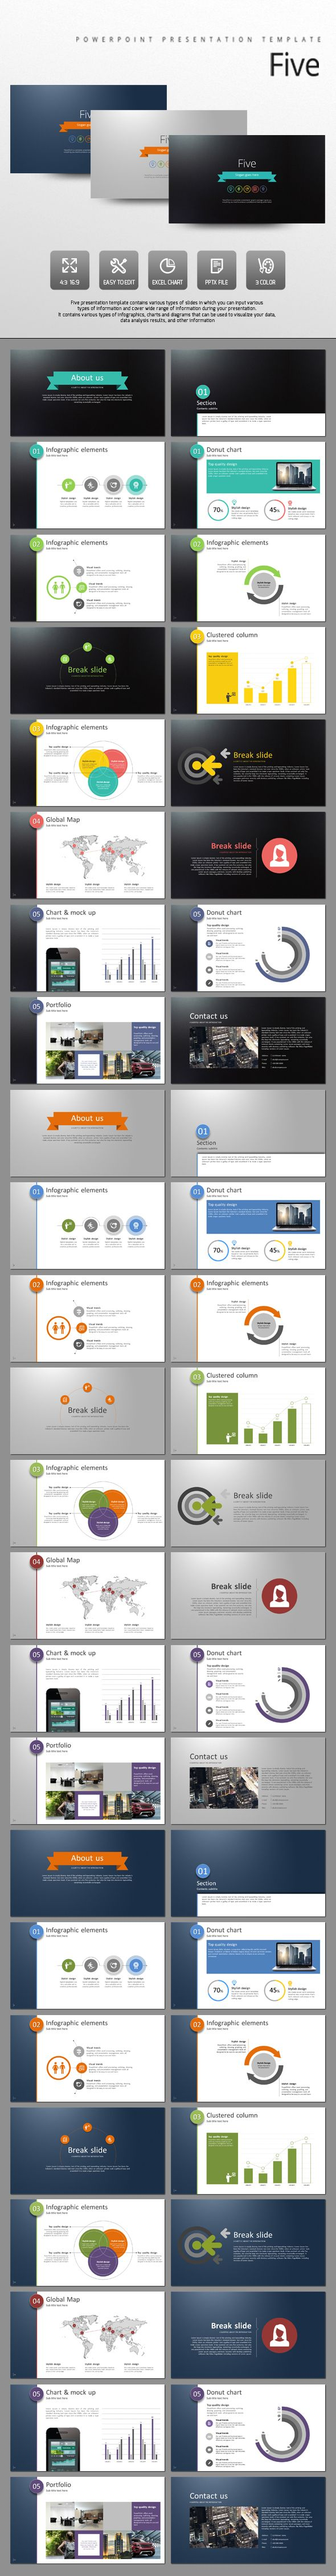 Five (PowerPoint Templates)